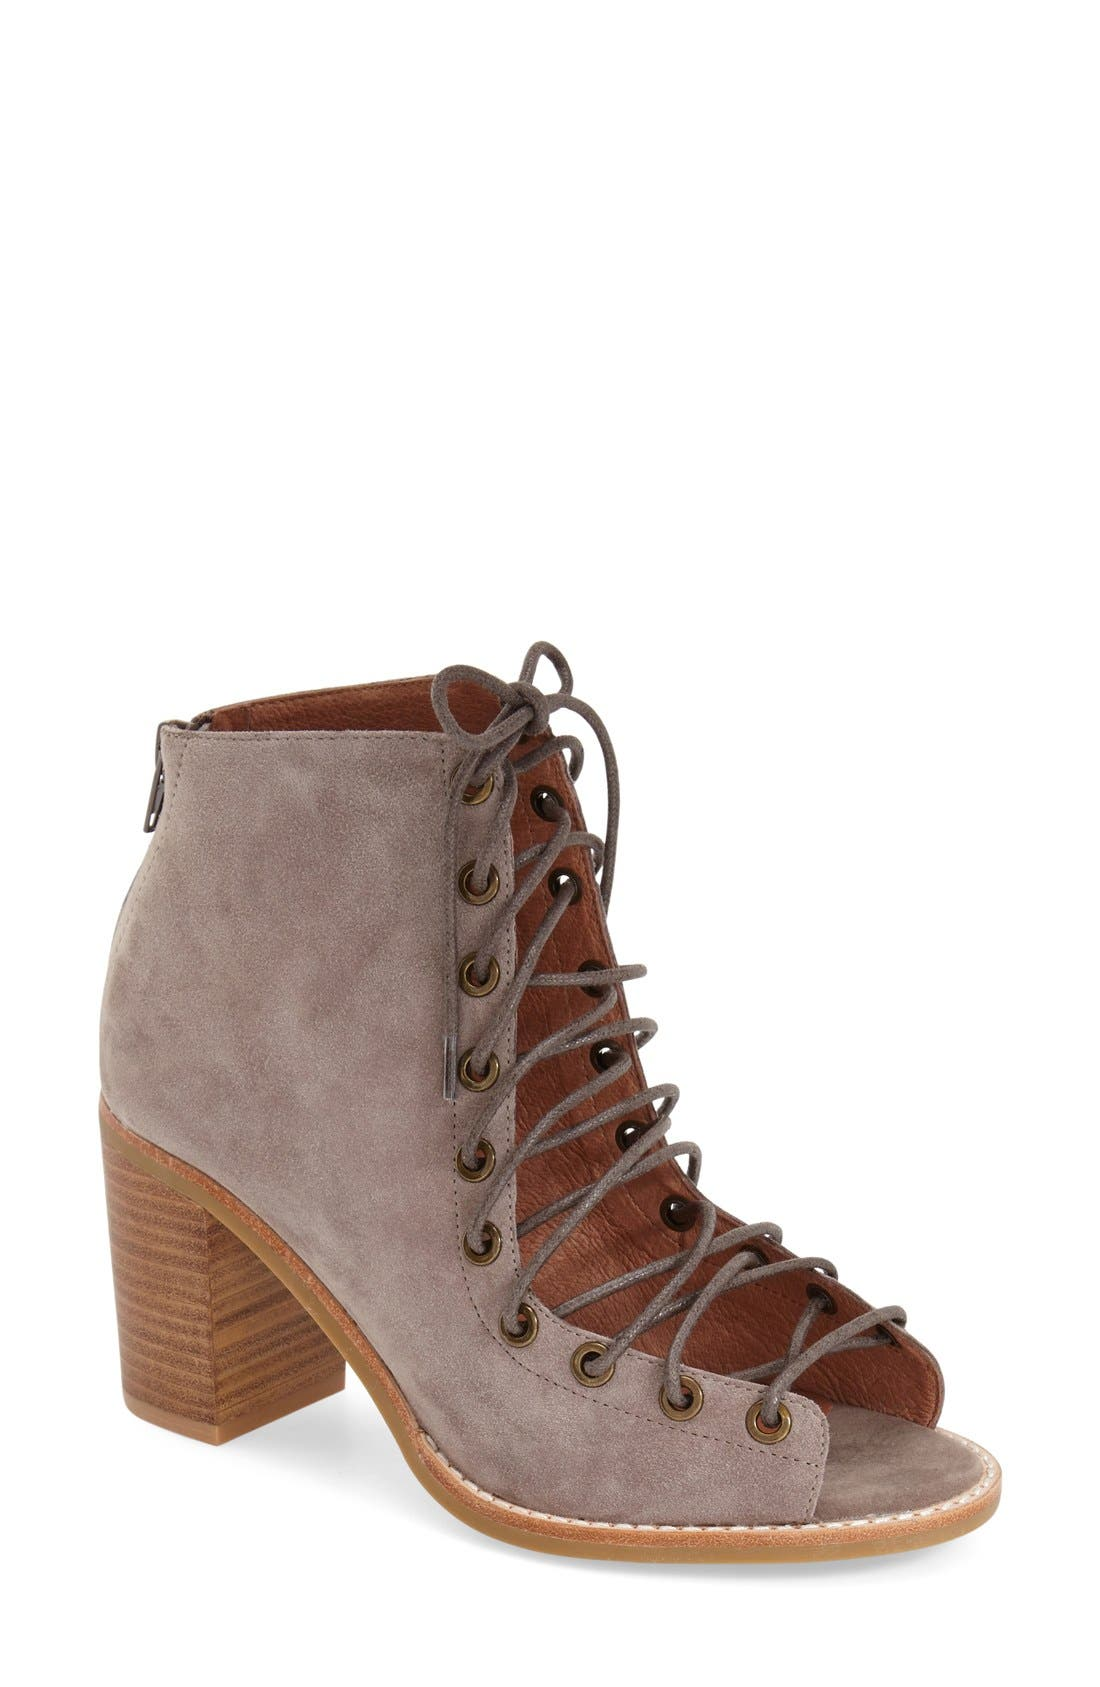 Alternate Image 1 Selected - Jeffrey Campbell 'Cors' Suede Peep Toe Bootie (Women)